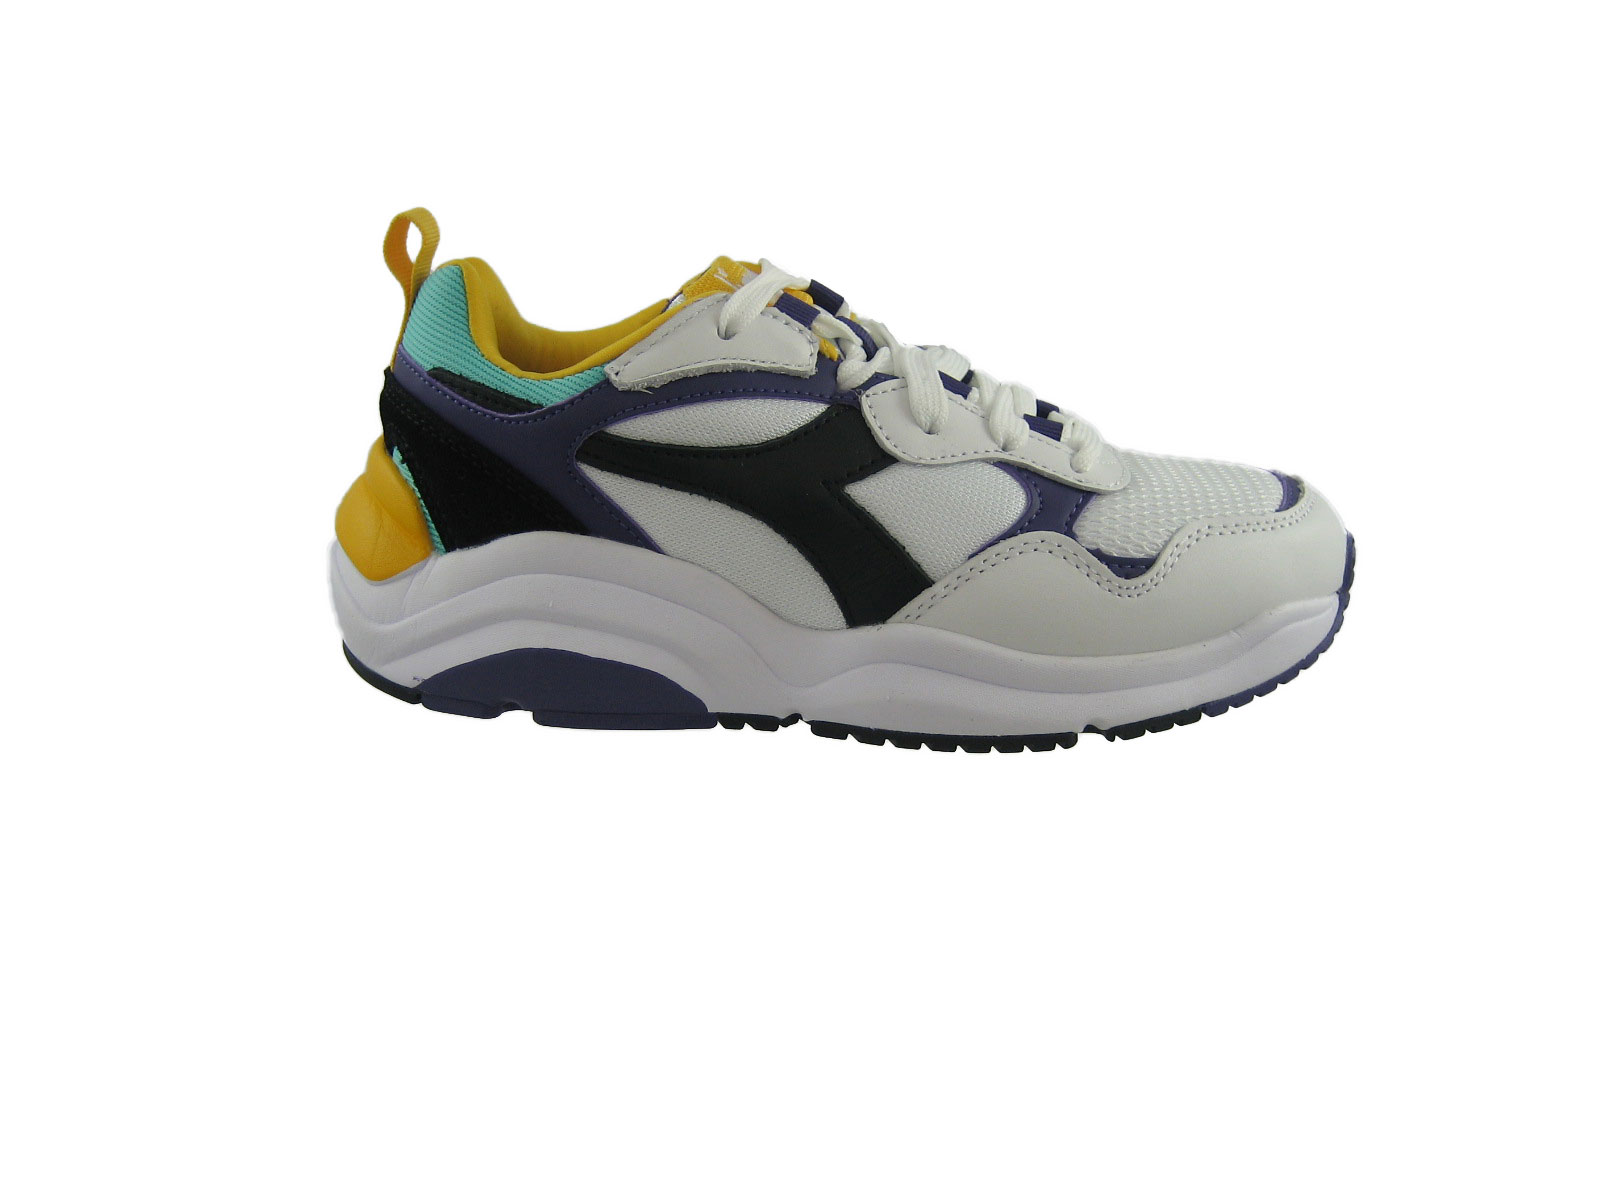 E19 Diadora Whizz Run C8019biancnero.jpg